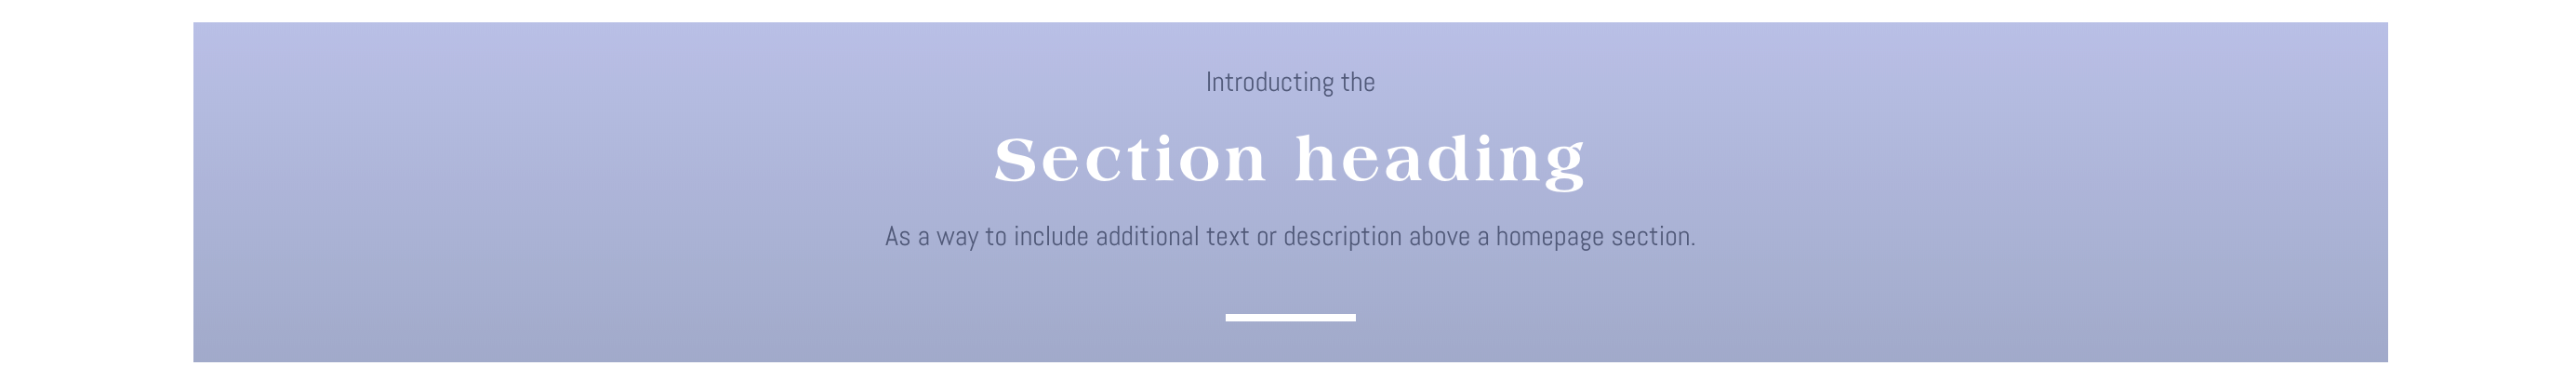 section-heading-lead-in.png